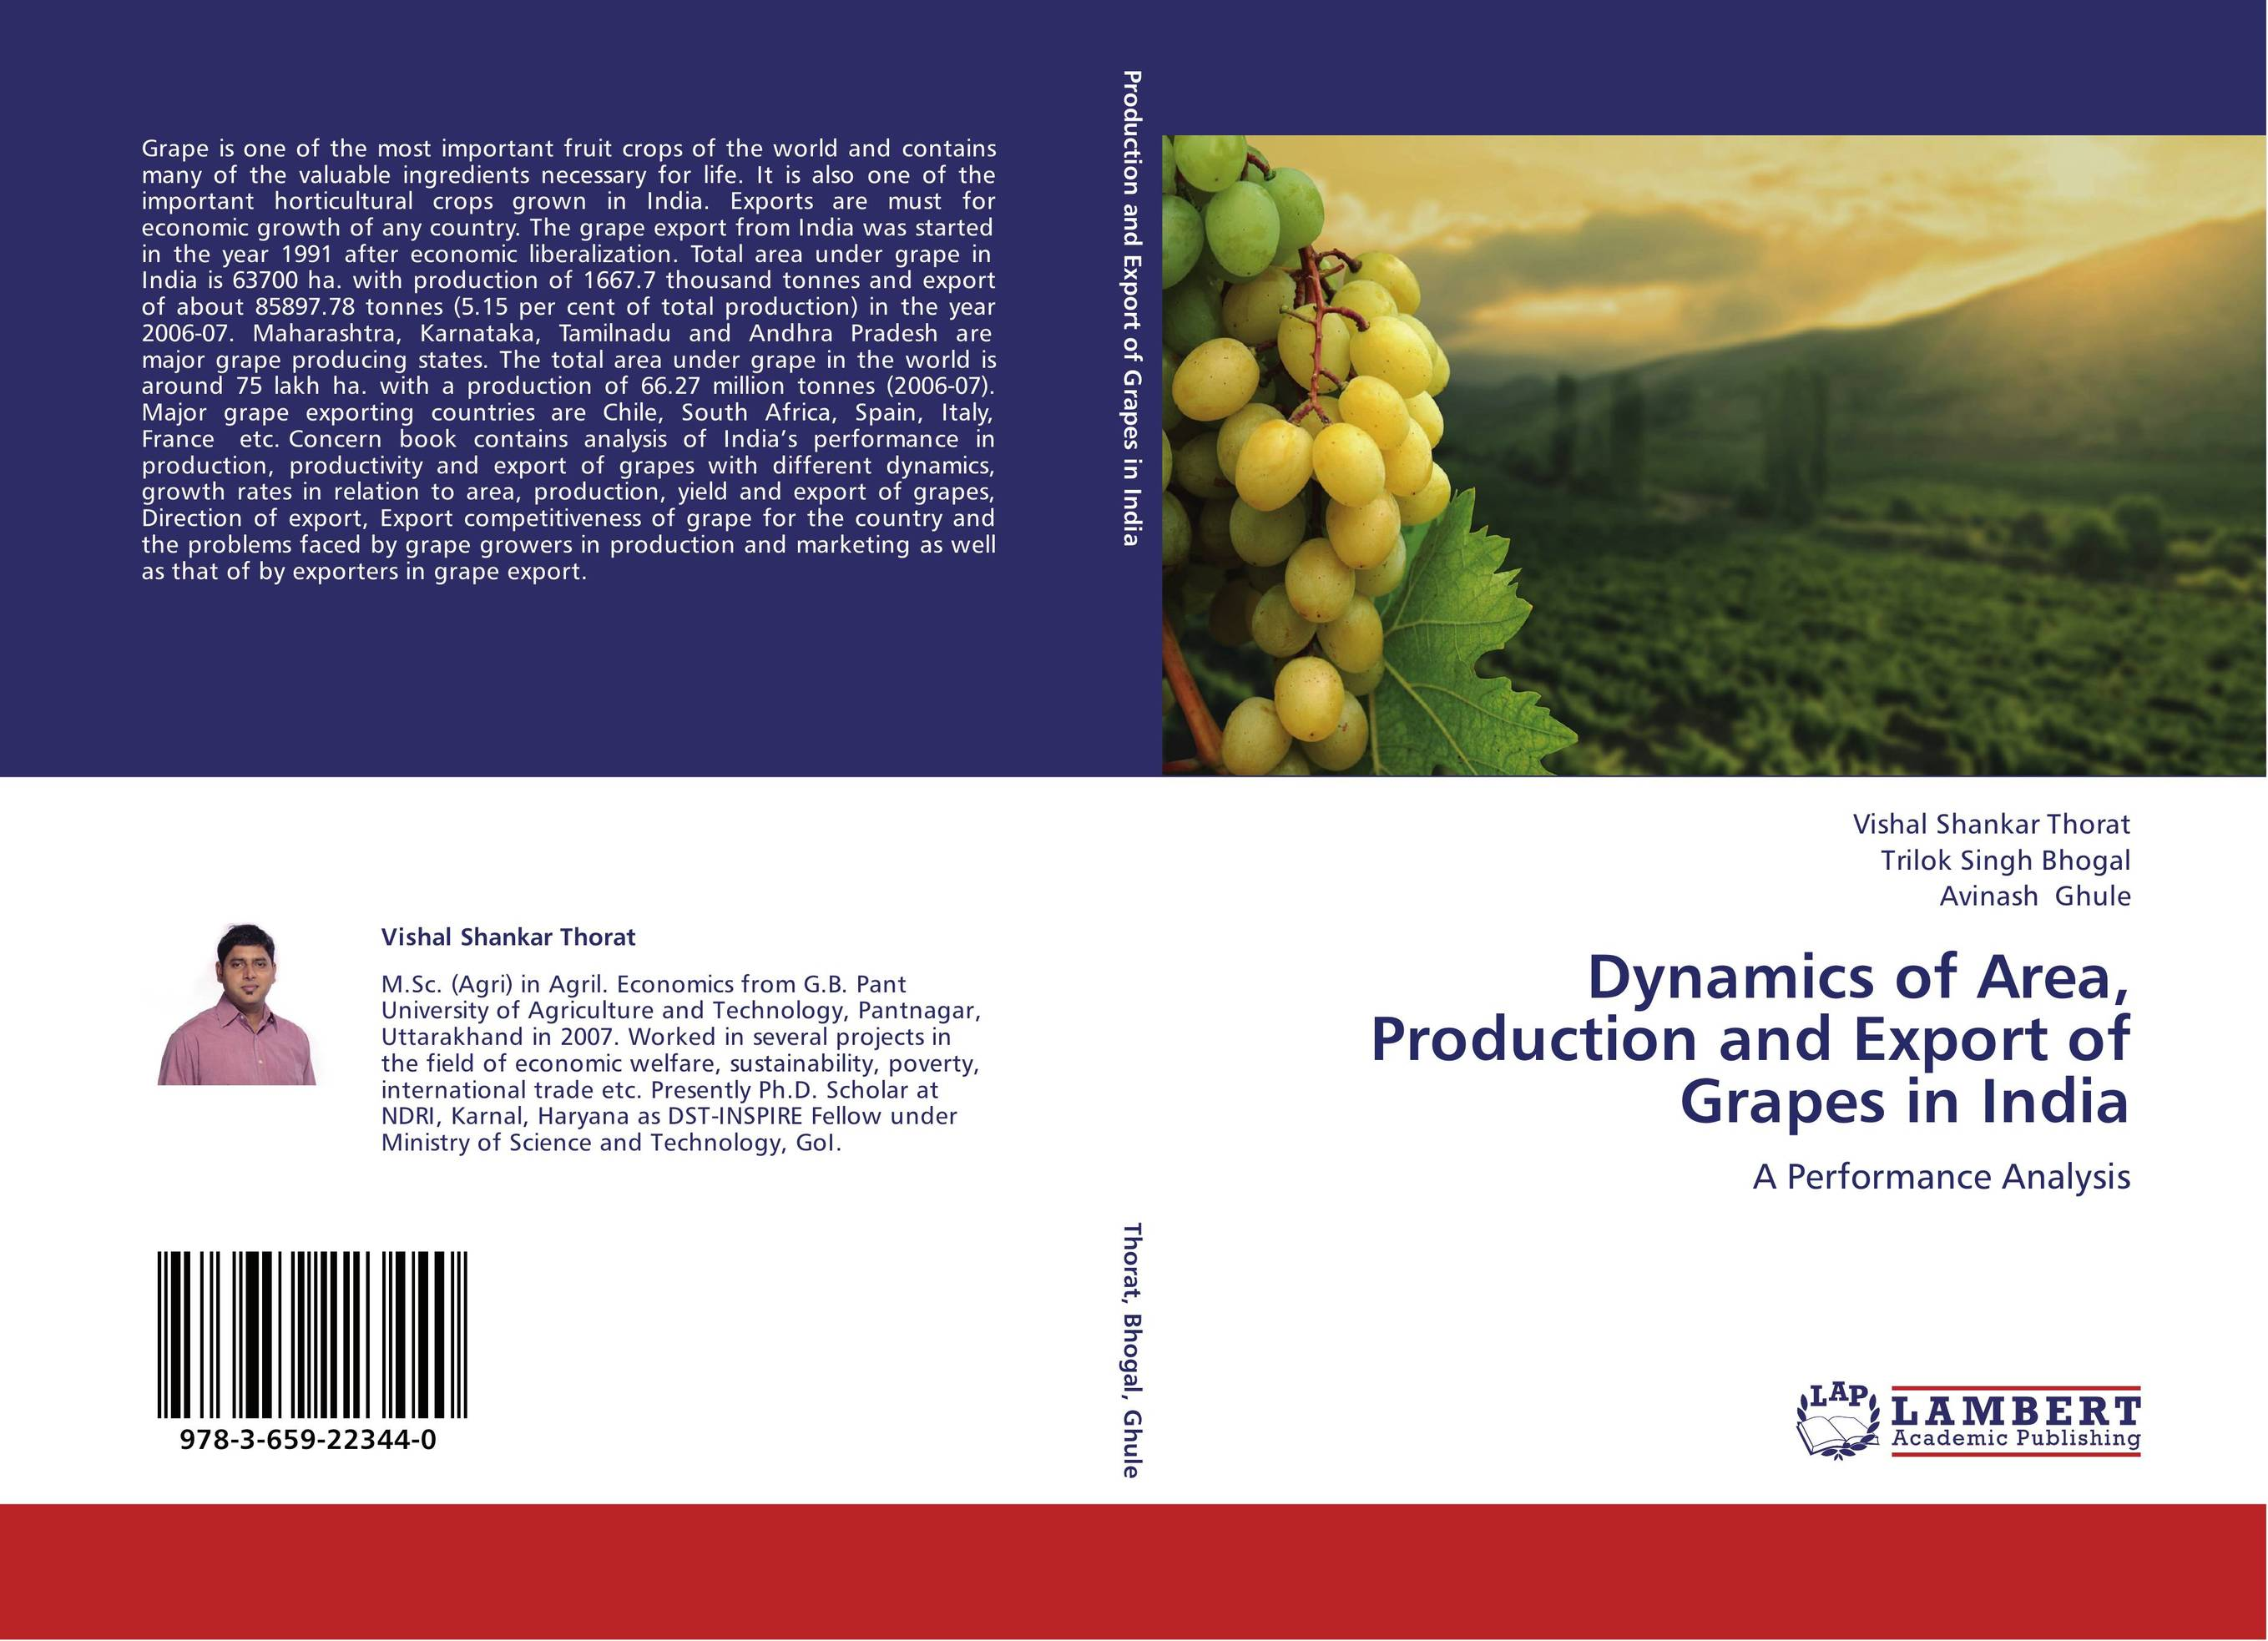 Dynamics of Area, Production and Export of Grapes in India